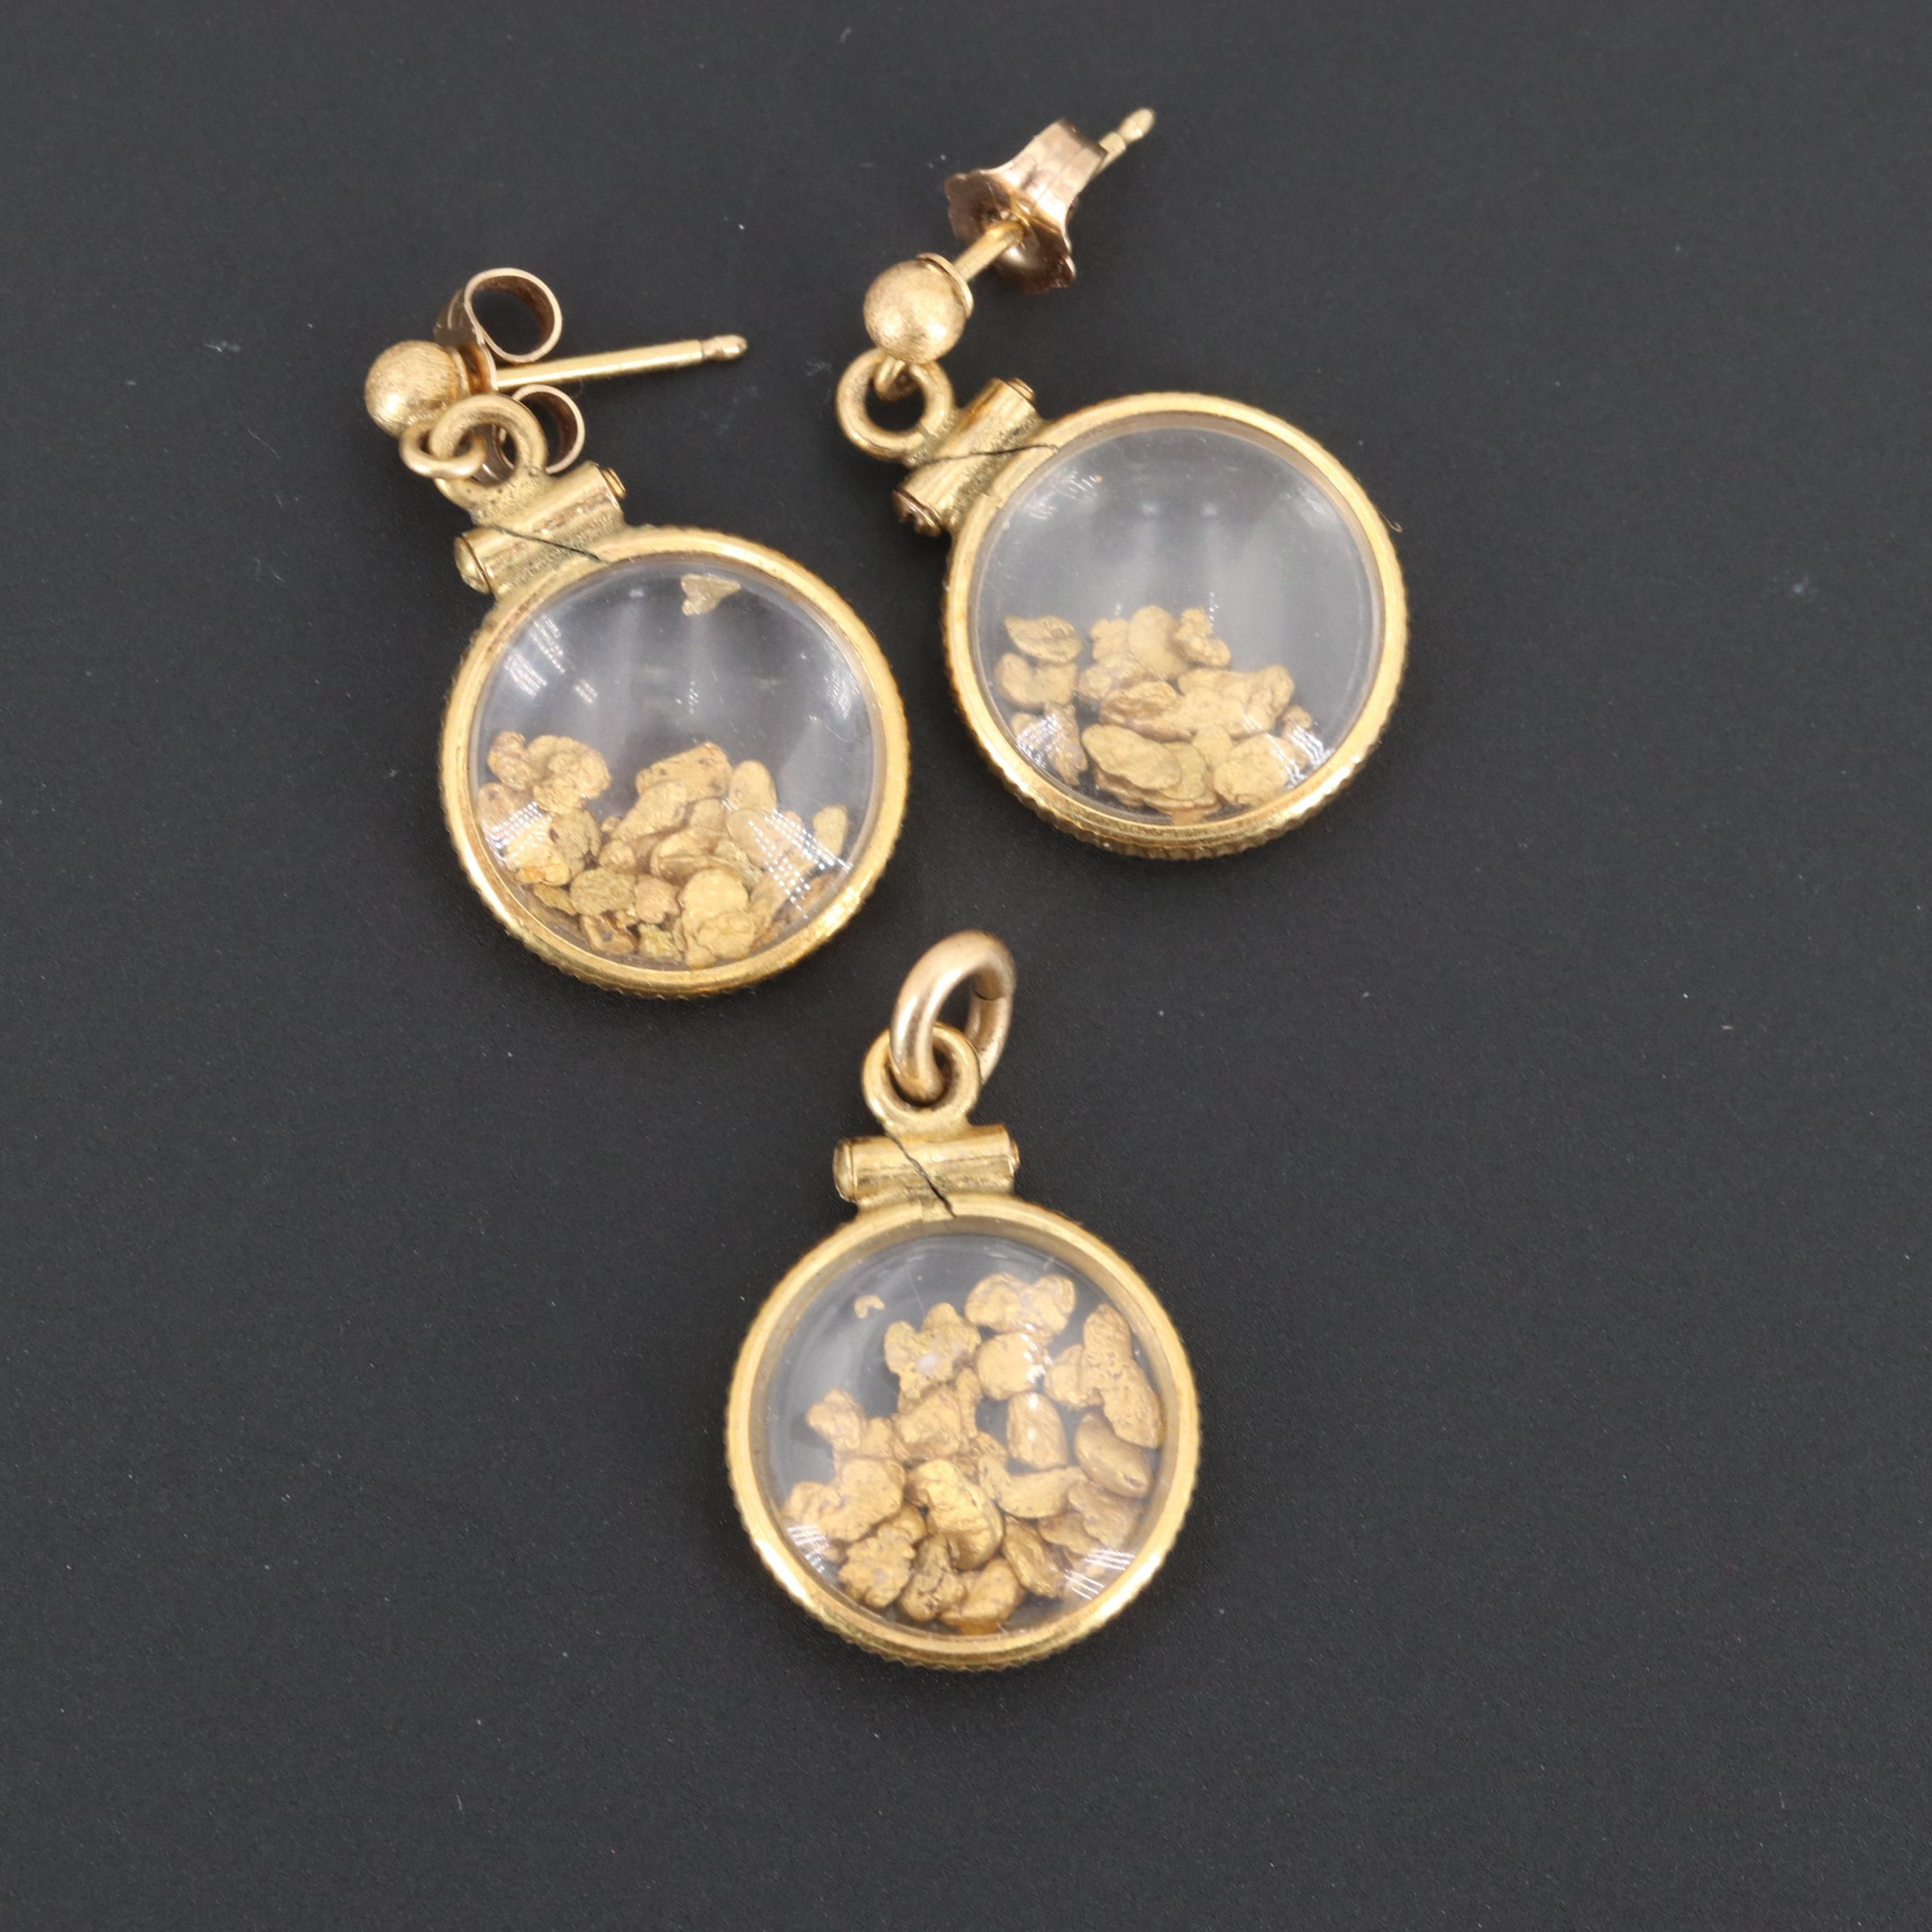 14K Yellow Gold Glass Earrings and Pendant Set